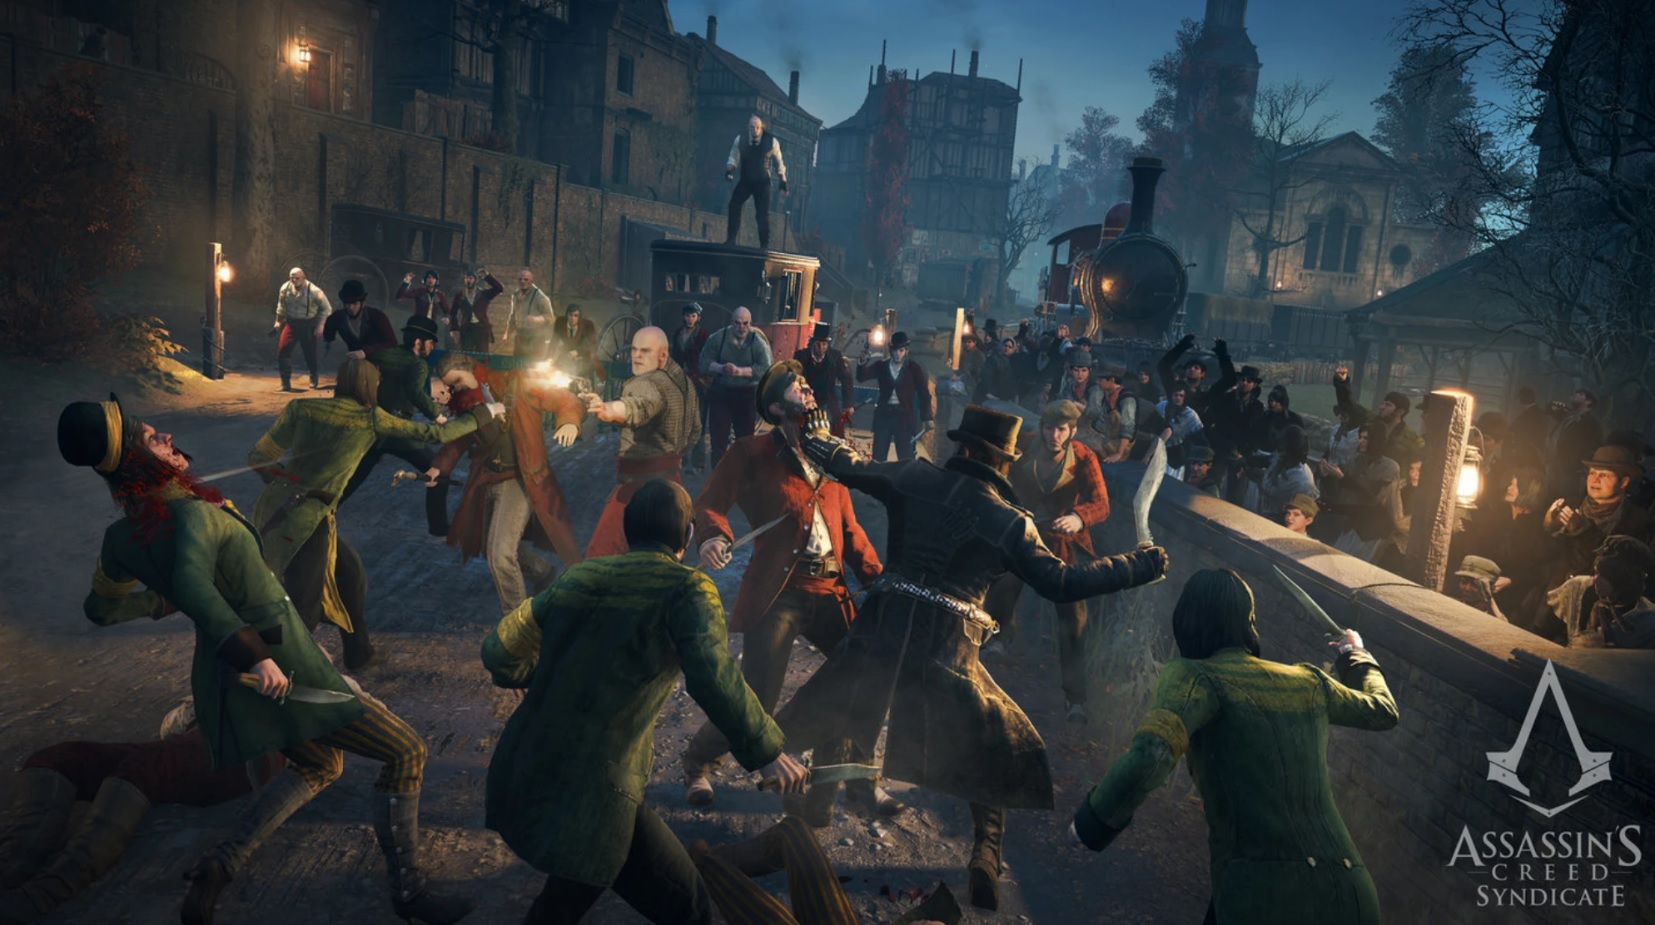 PSA: Assassin's Creed Syndicate is free right now screenshot